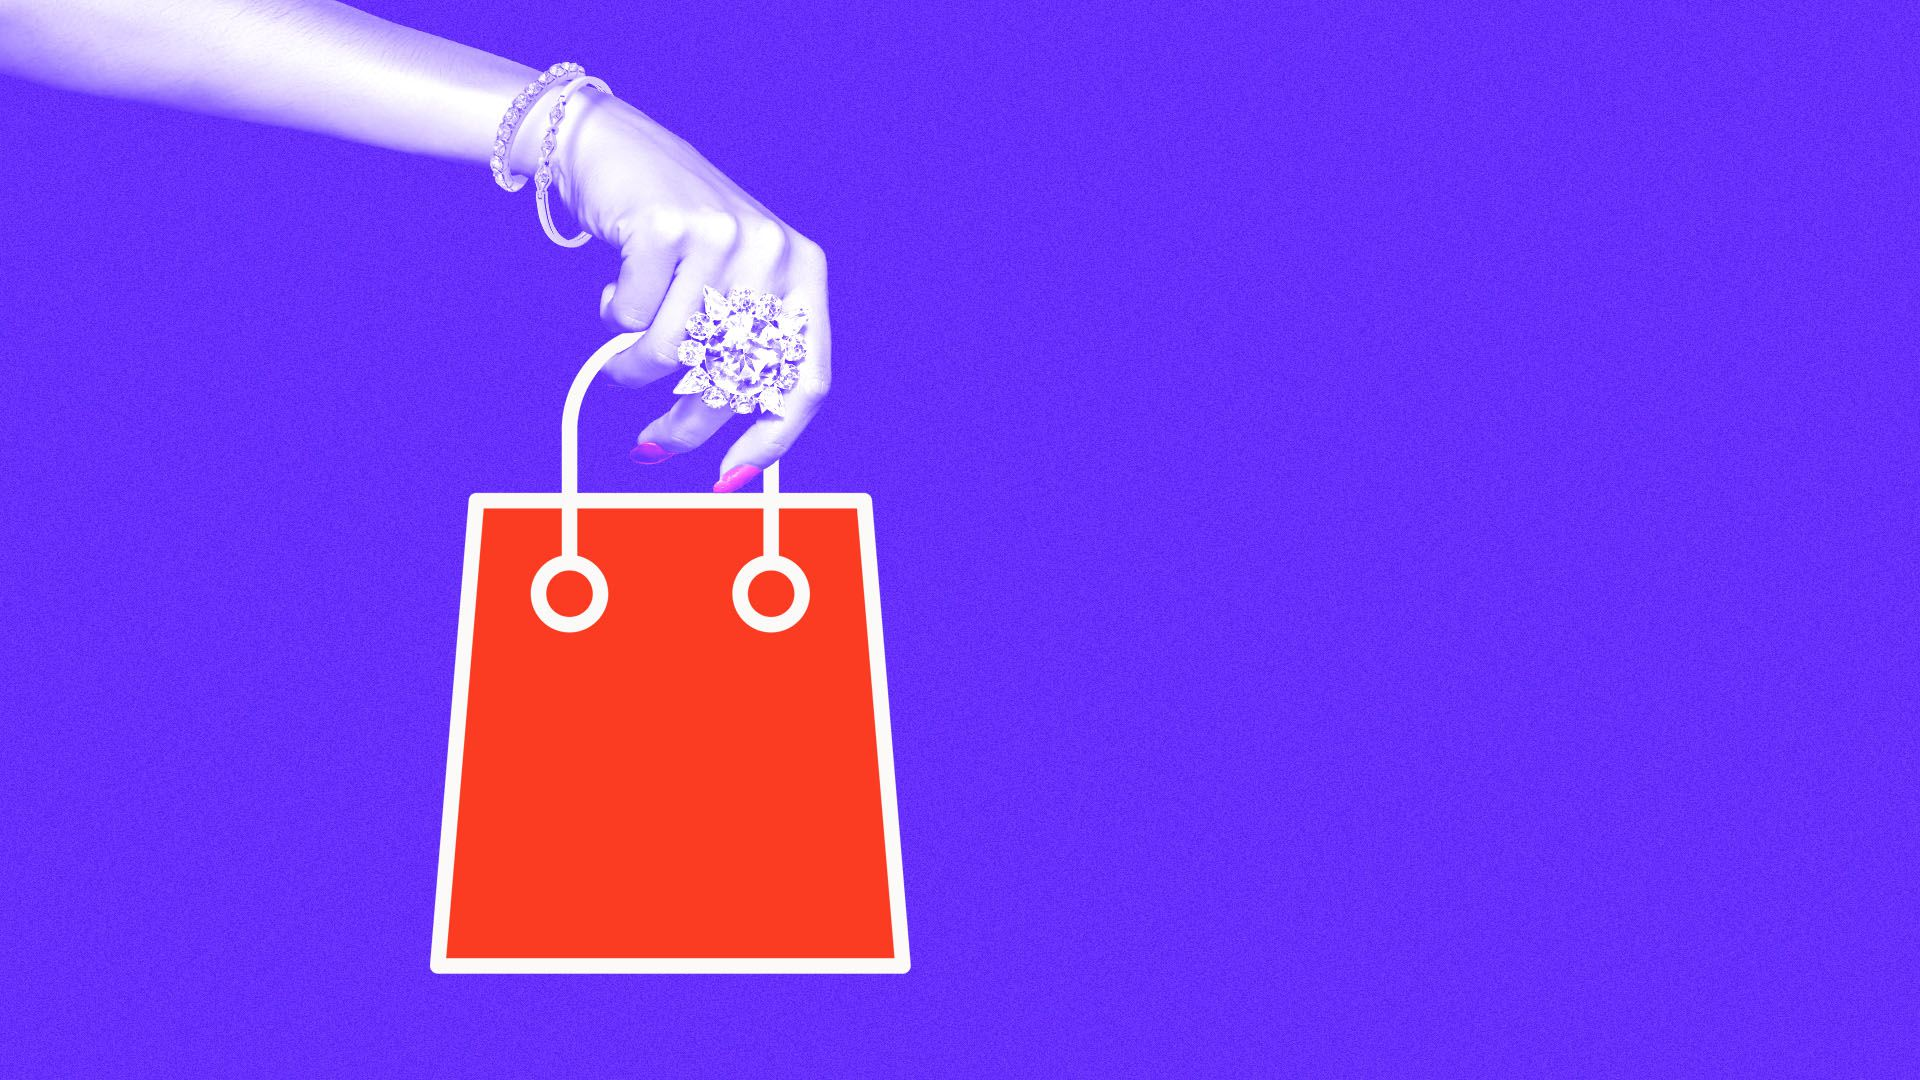 Illustration of a hand covered in jewelry holding a computer icon shopping bag